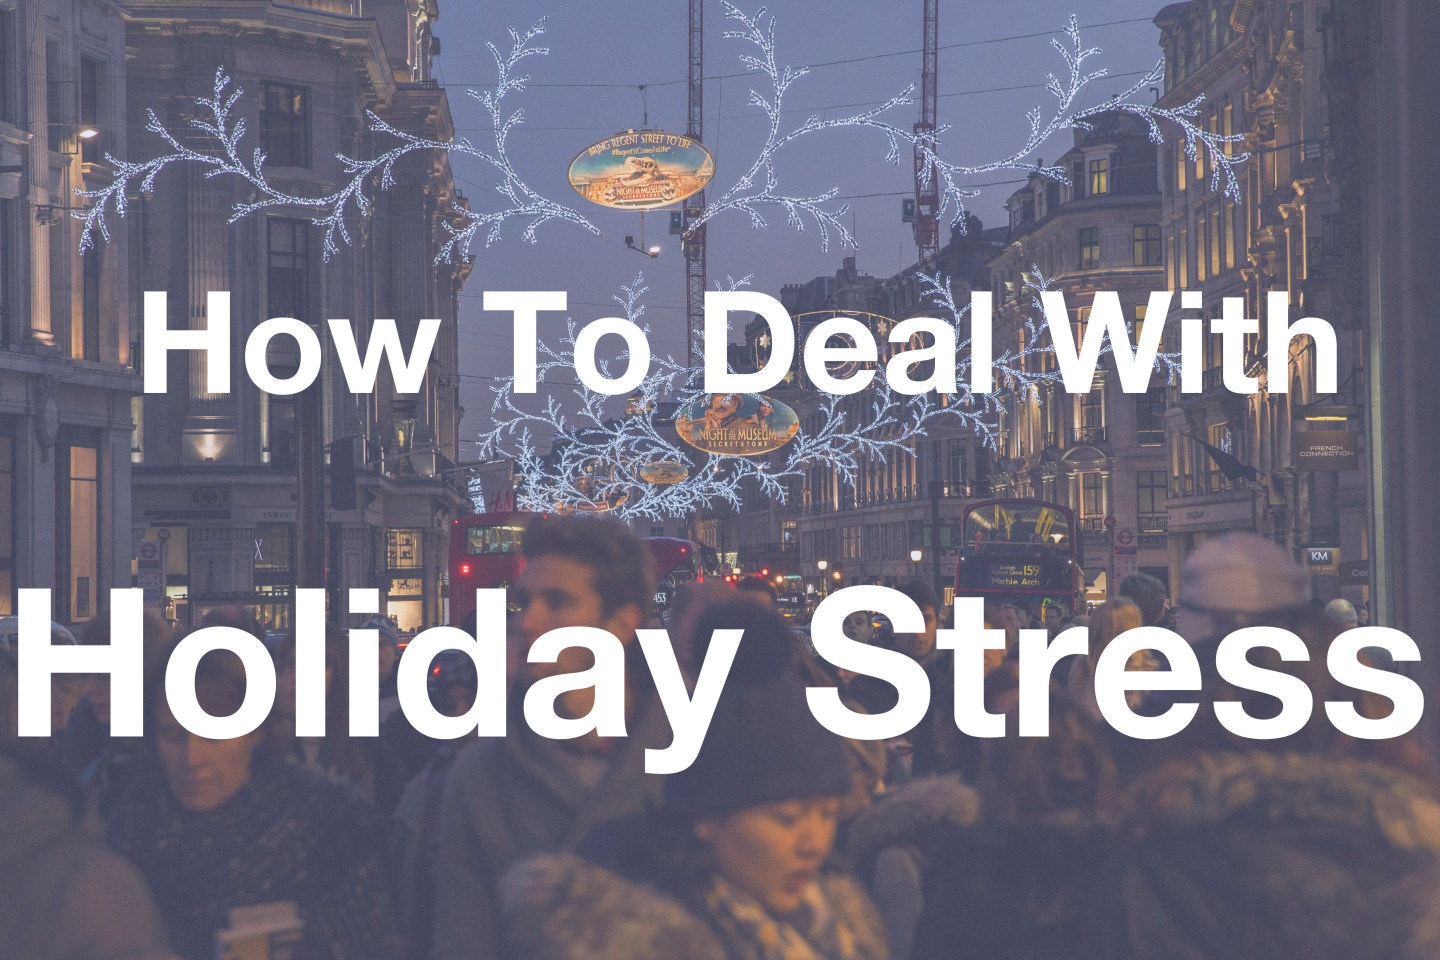 How To Deal With Holiday Stress